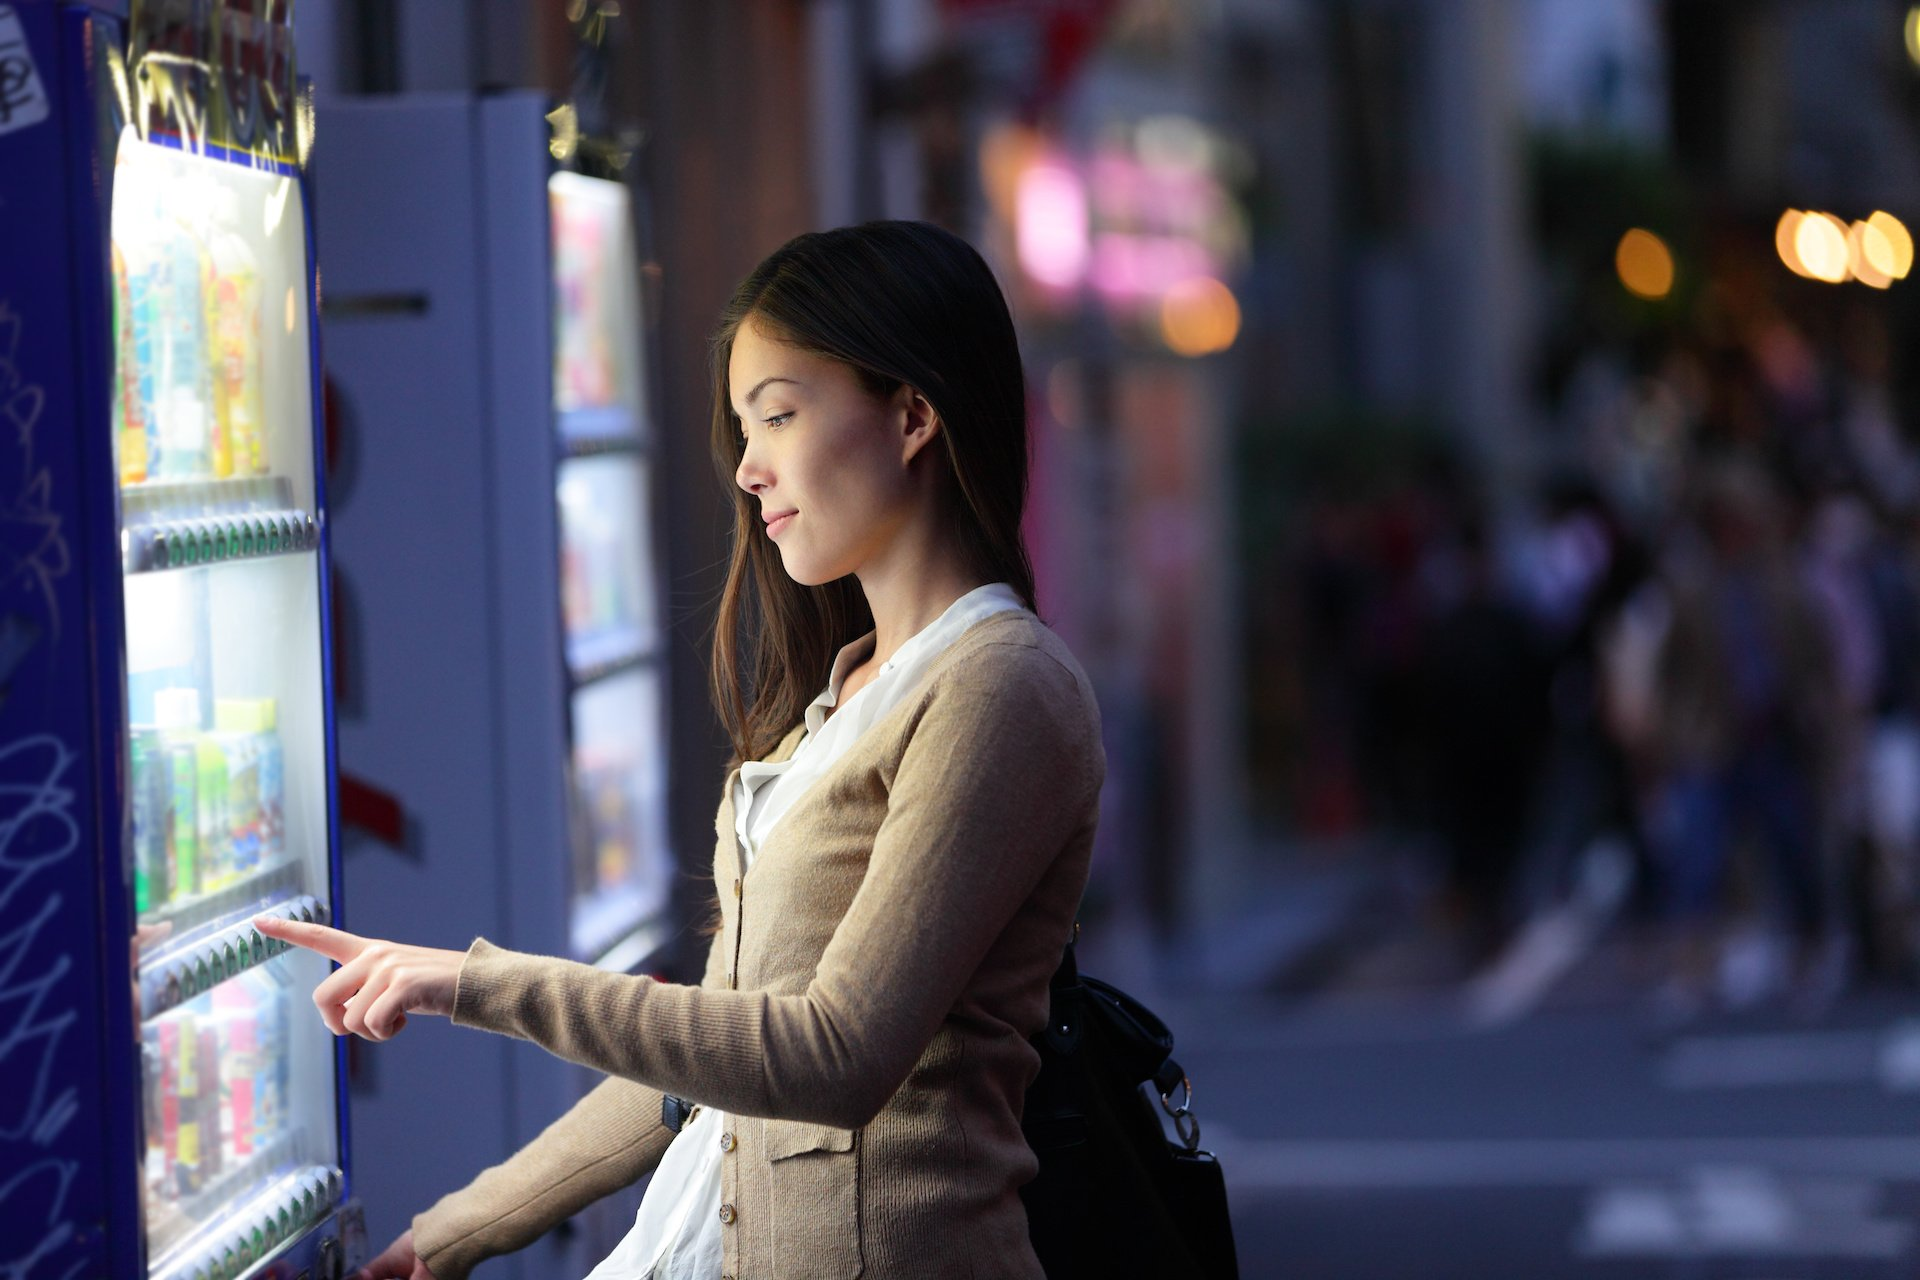 Young woman choosing a snack or drink at vending machine at night.